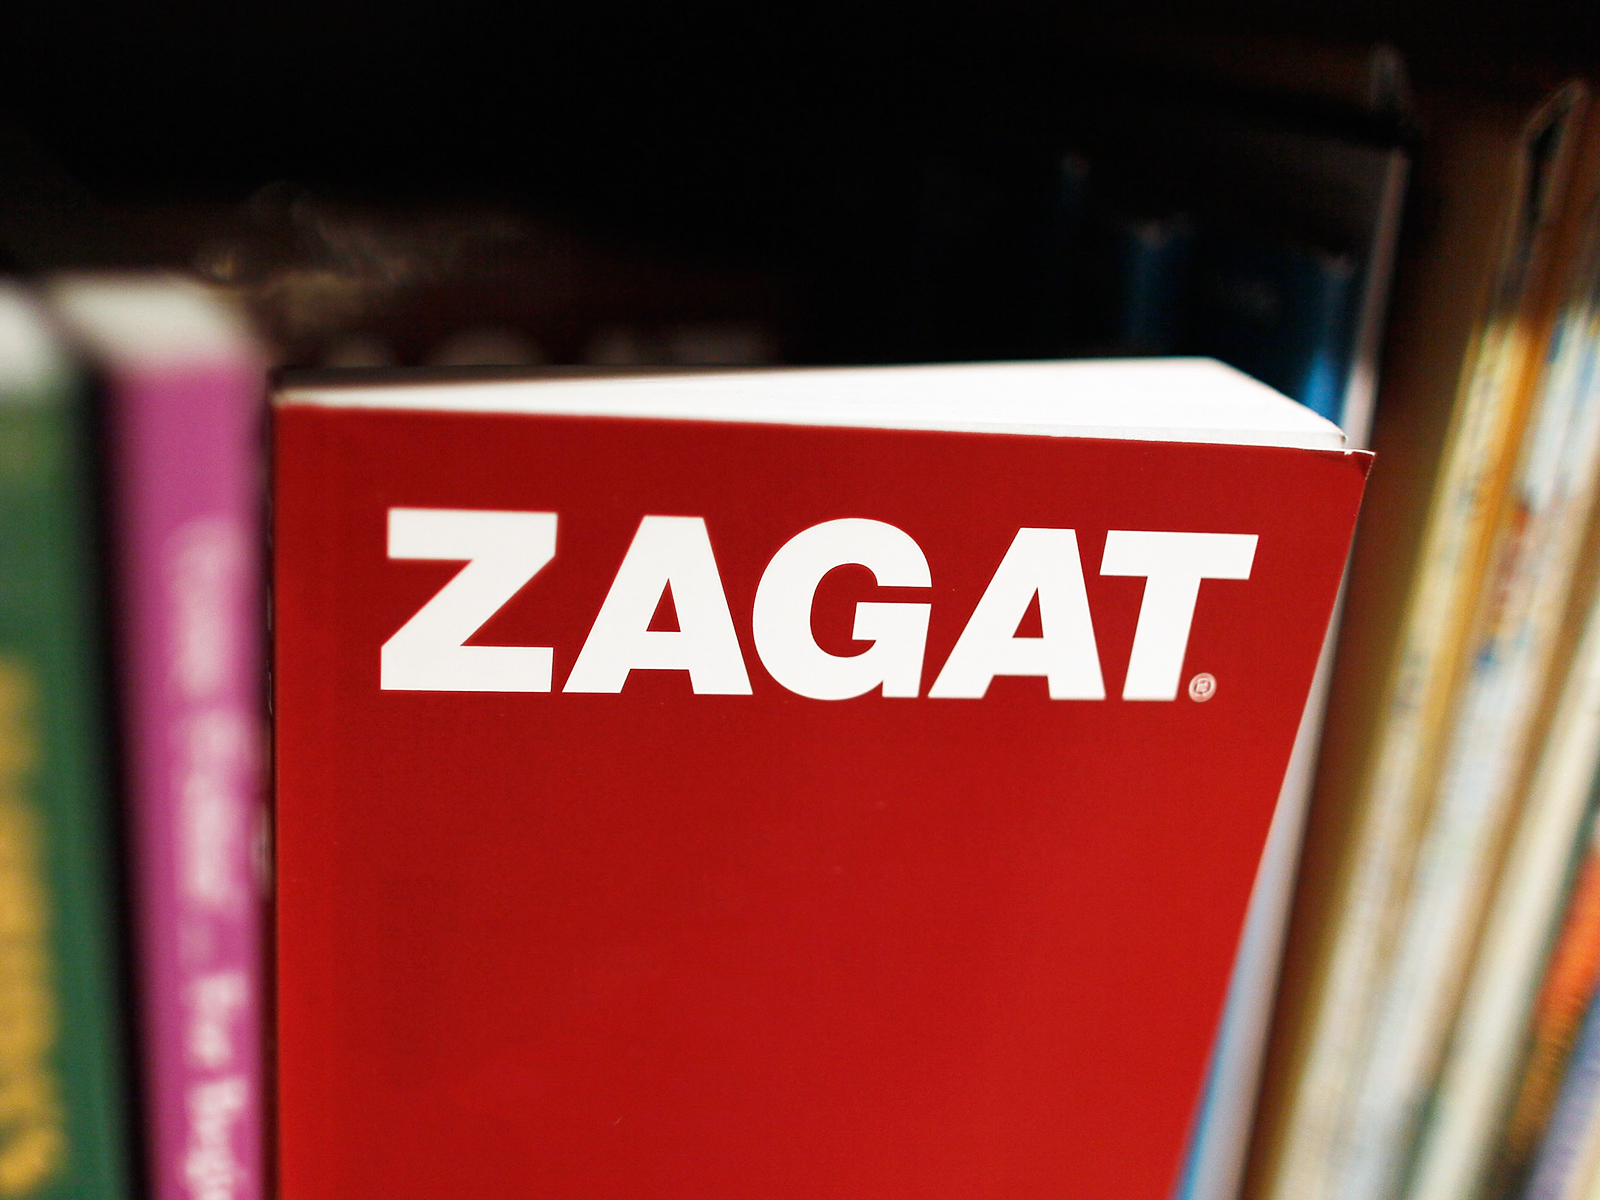 After years of neglect, Google finally sells Zagat